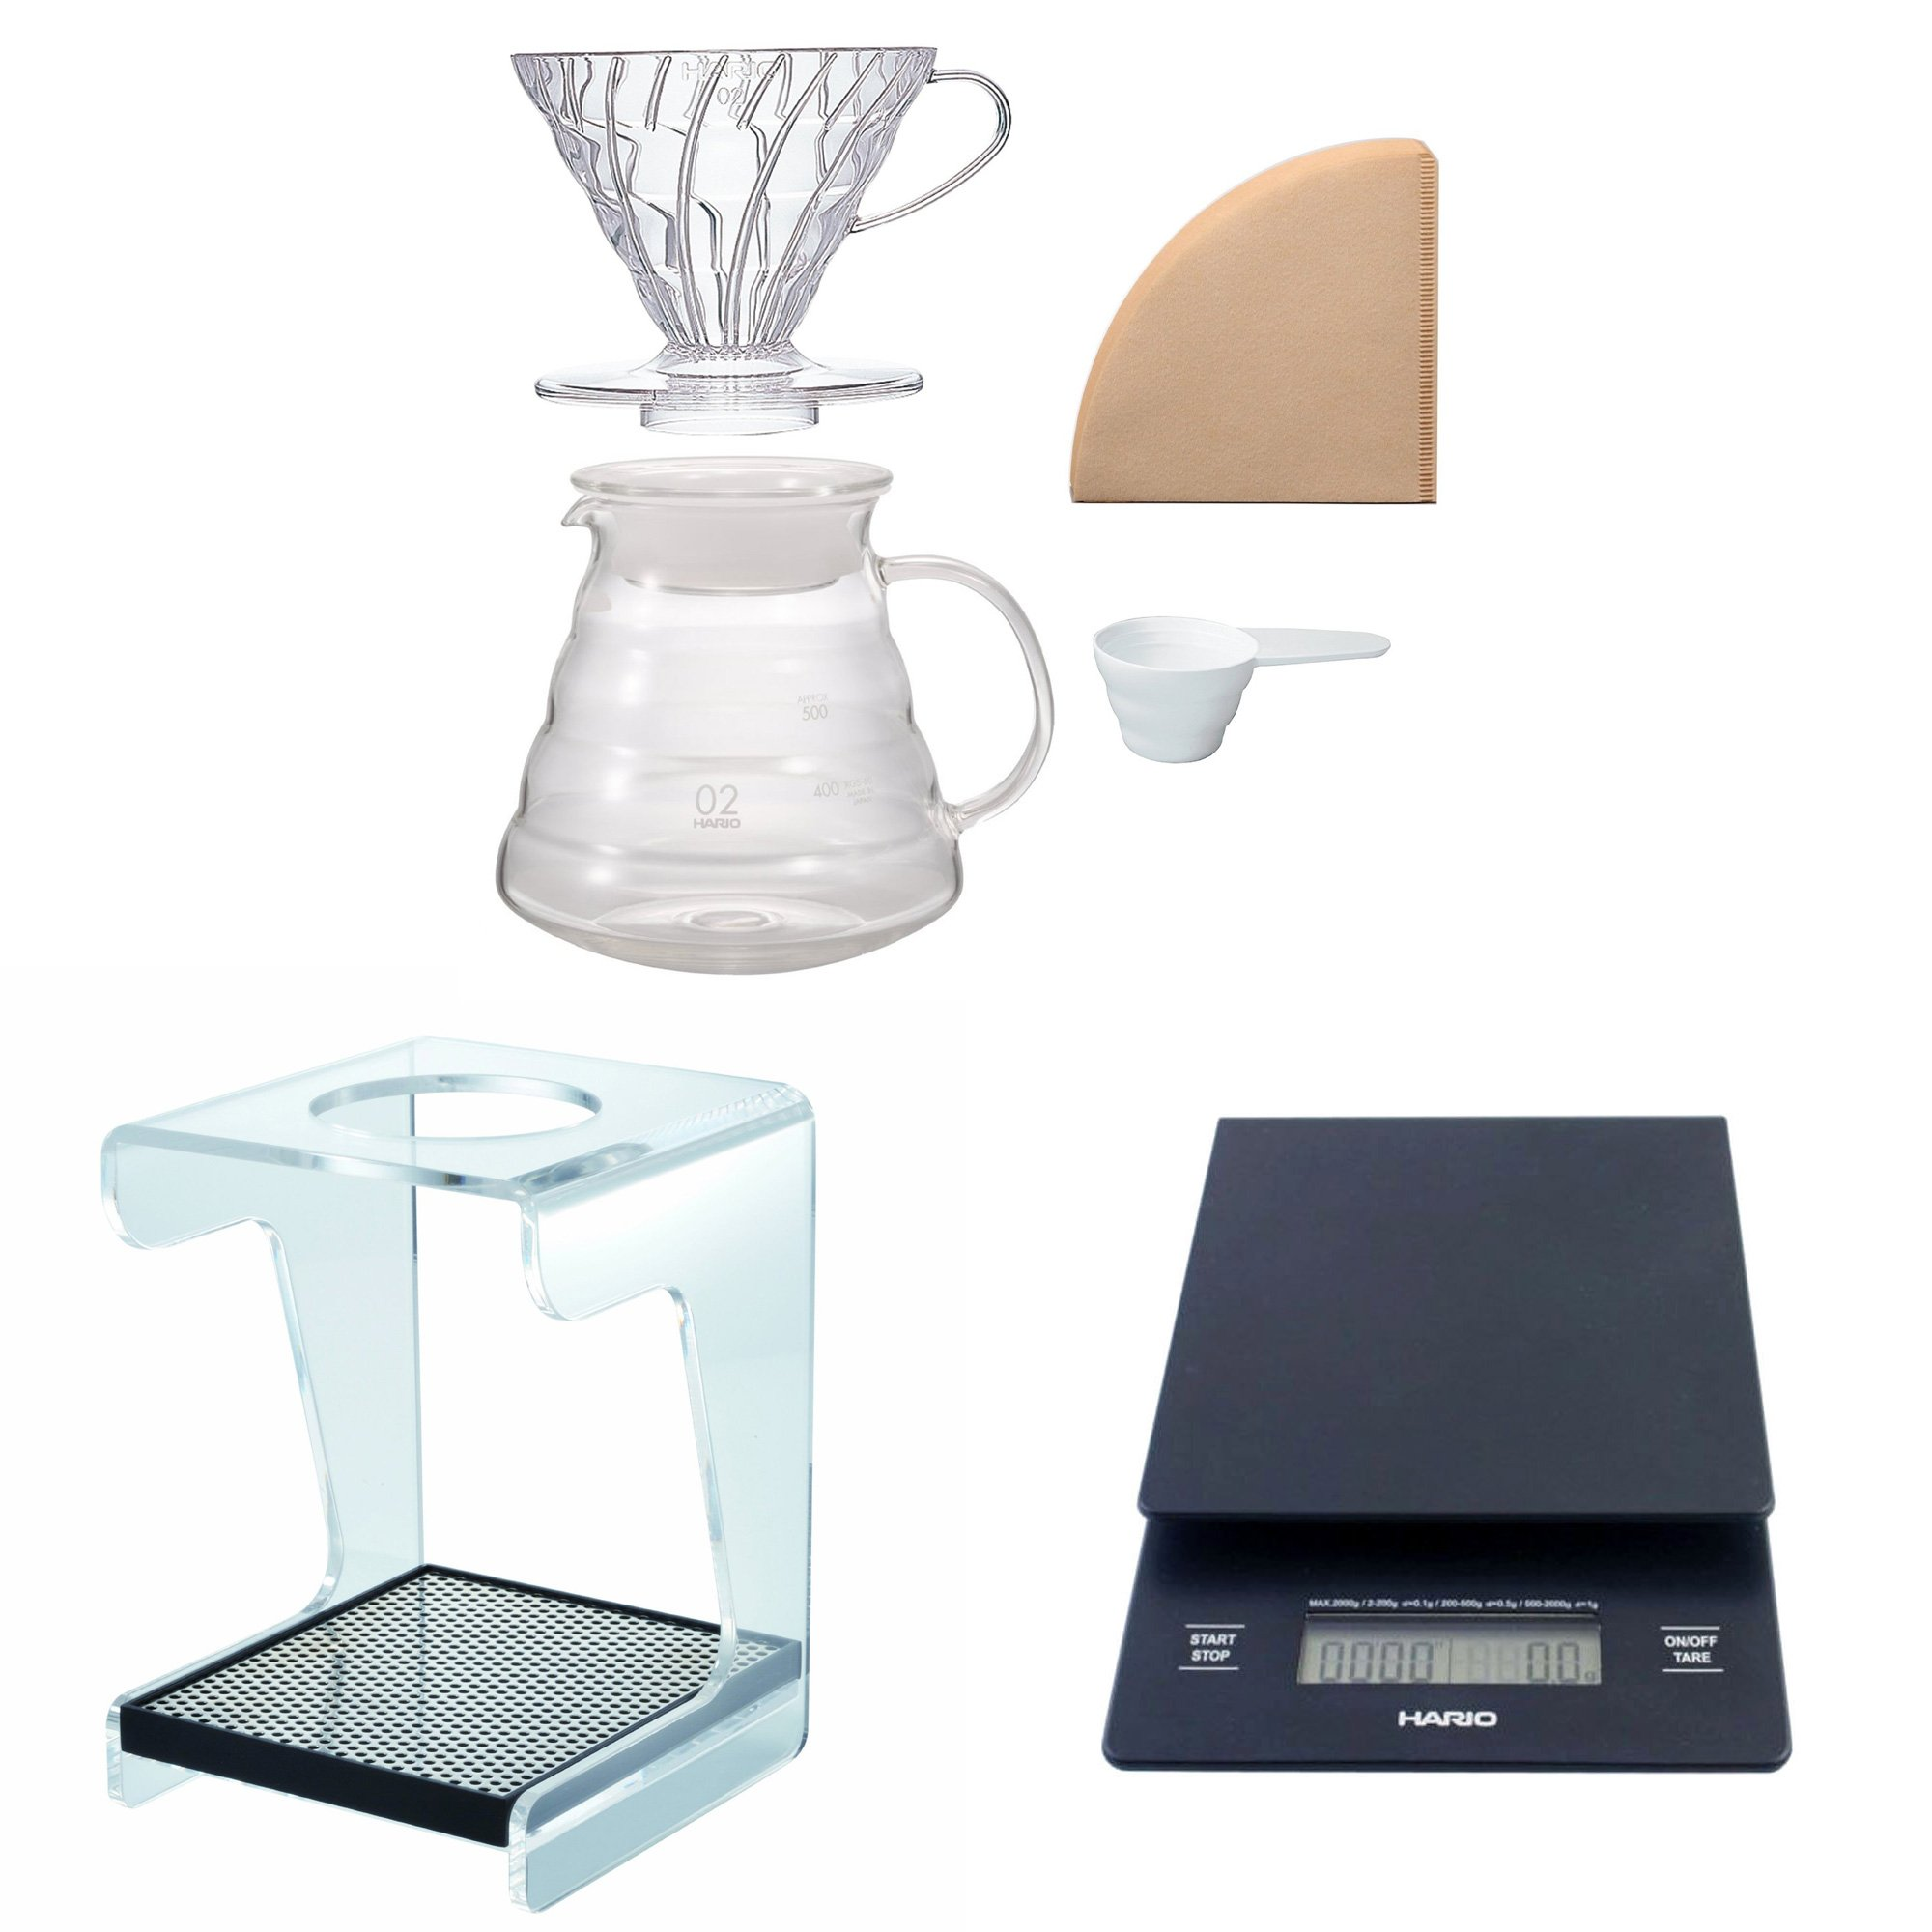 Hario V60 Complete Coffee Brewing Set - Scale, Brewer Set & Stand by Hario (Image #1)